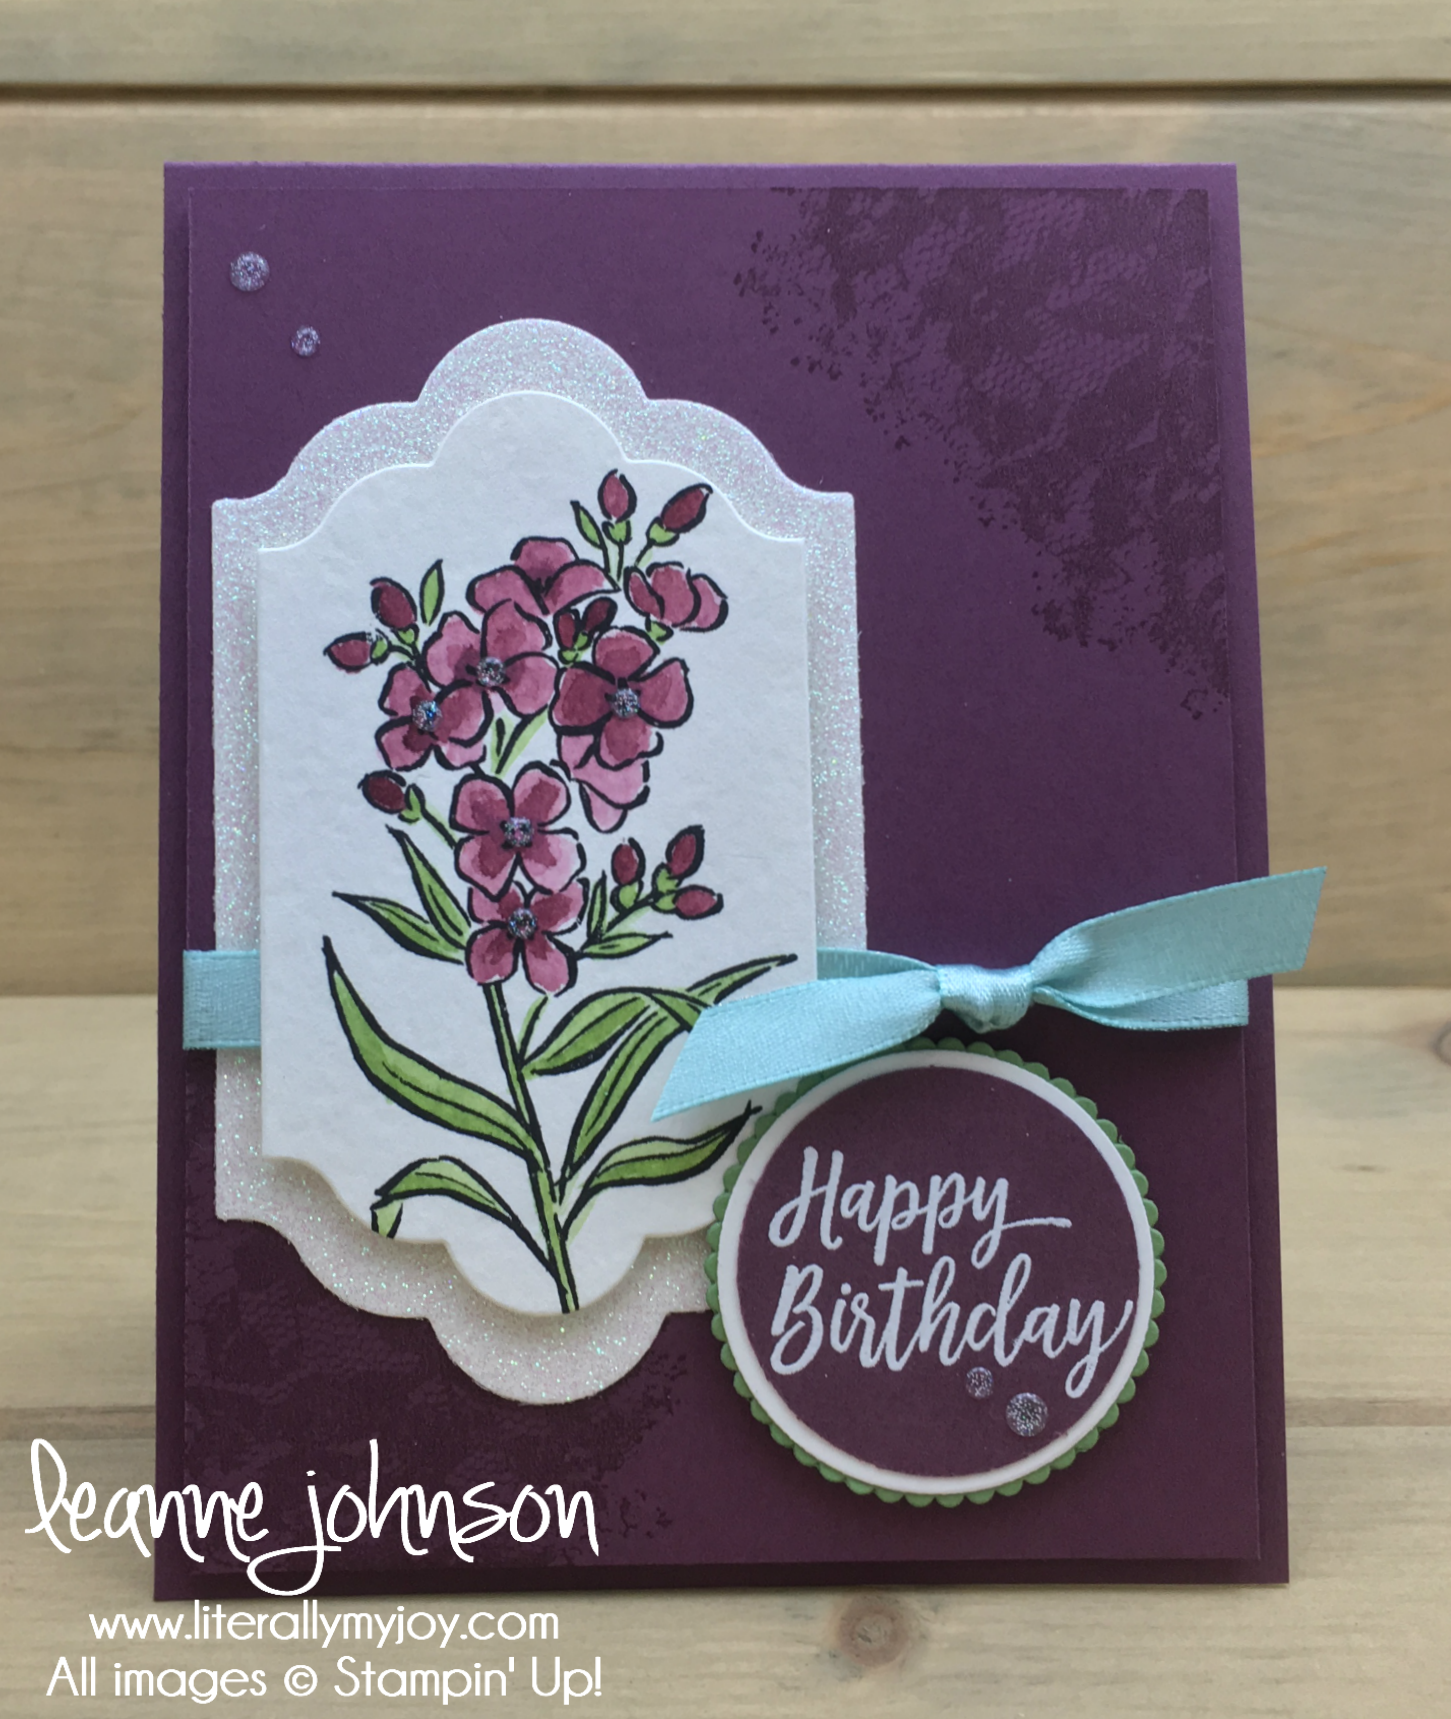 Feb 3 wild fresh birthday southern cards and card ideas homemade birthday cards izmirmasajfo Images